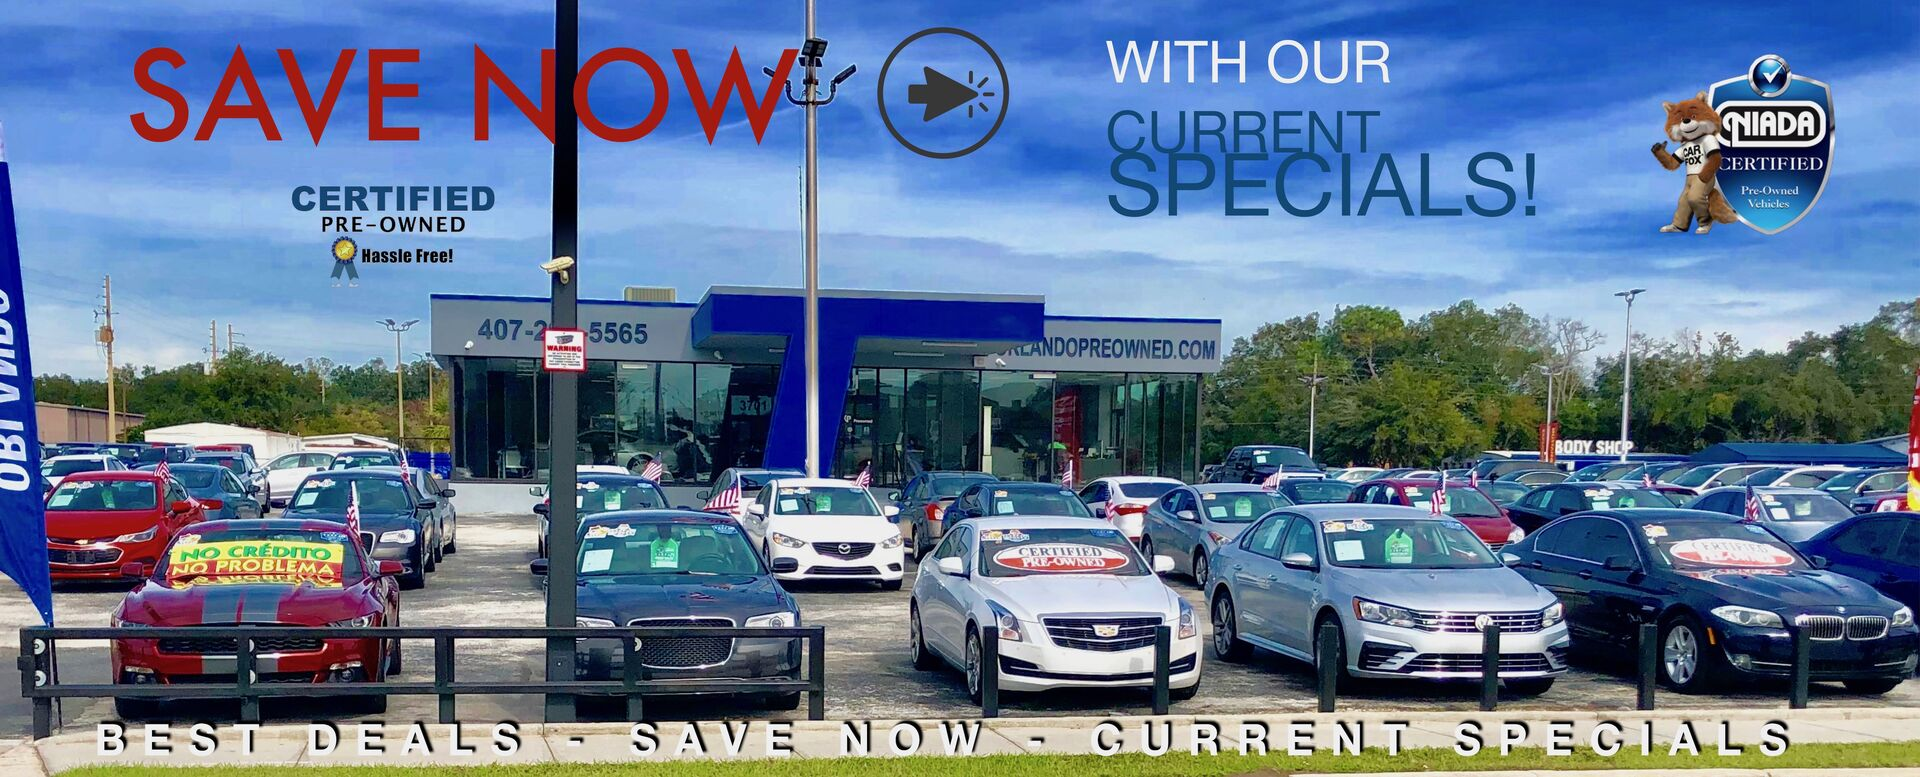 Used Cars in Orlando Sale - Current Specials